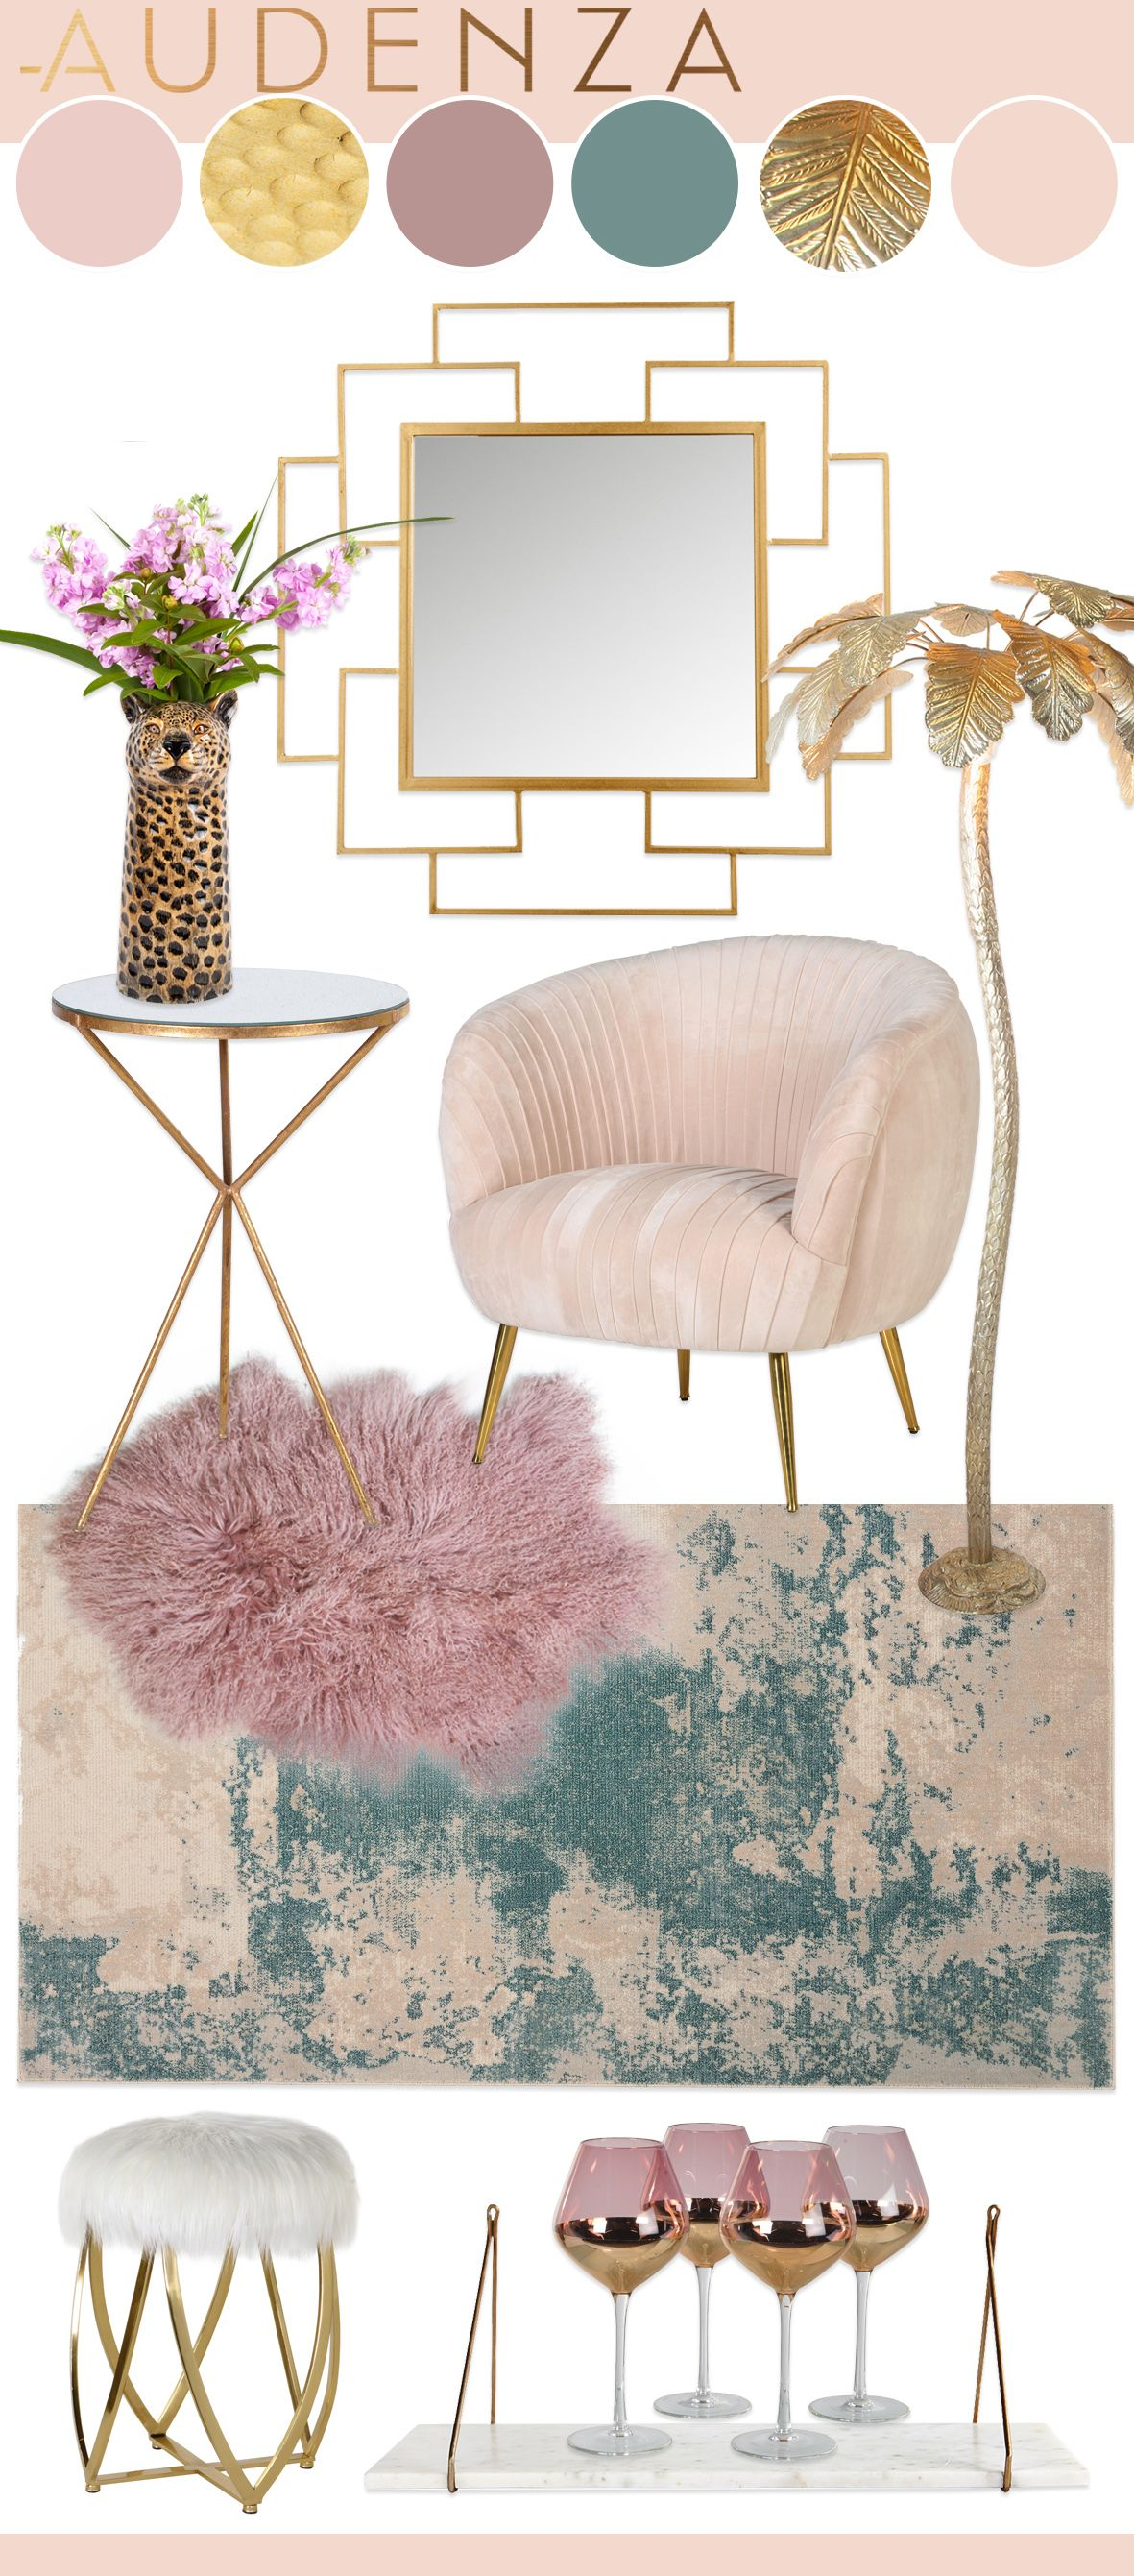 3 New Season Mood Board Ideas for a Super Stylish Home images